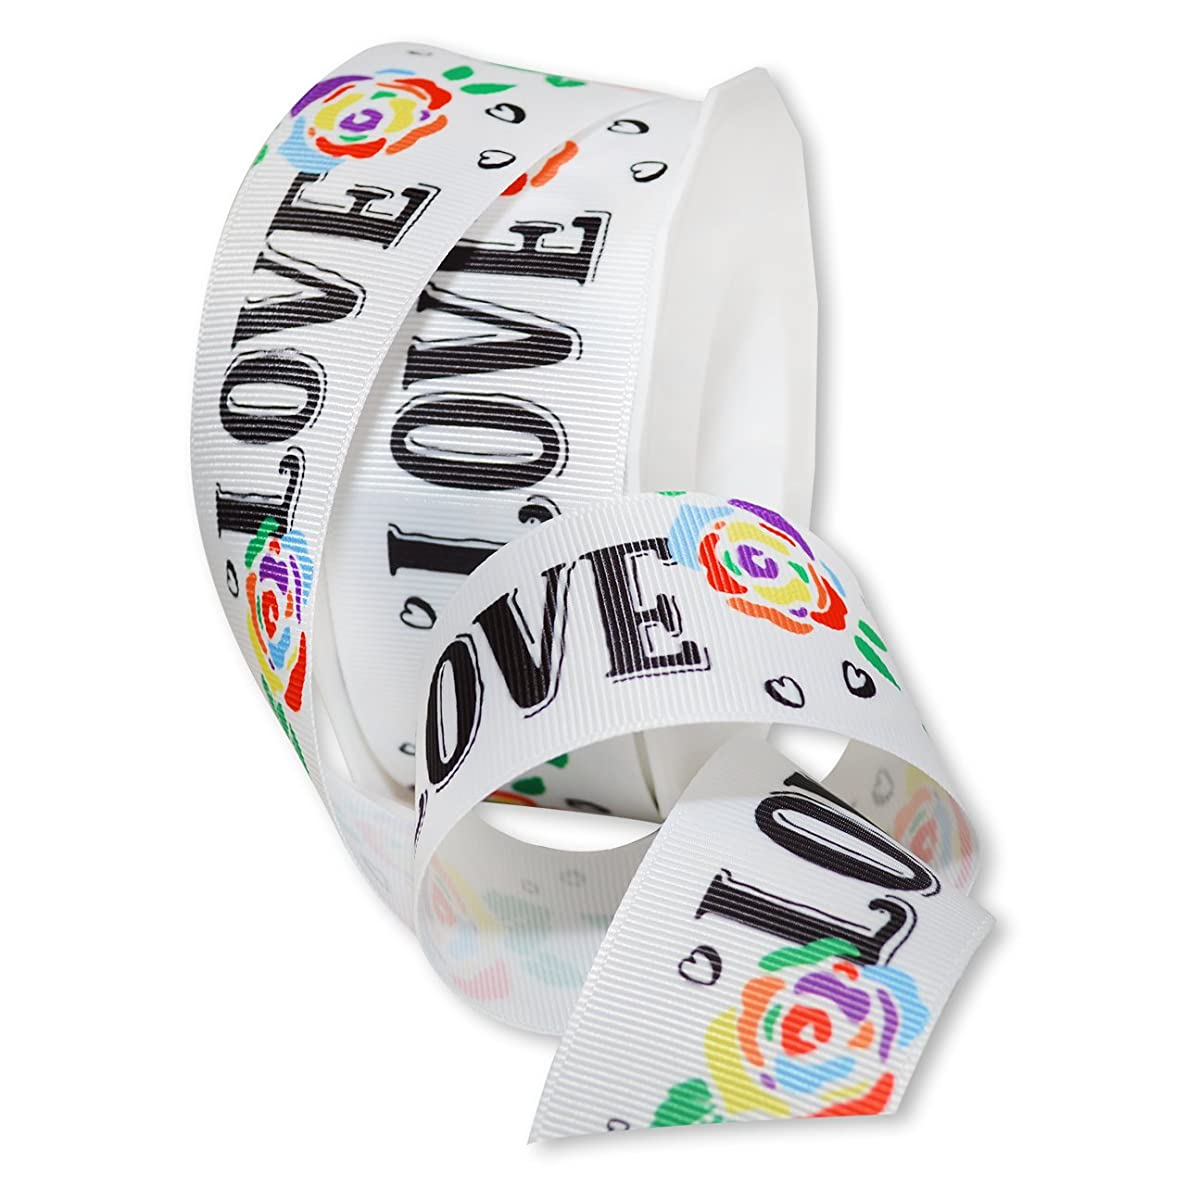 Morex Ribbon Sweet Love Ribbon, Polyester, 1 1/2 inches by 25 Yards, Rainbow, Item 8654.38/25-698, 1 2